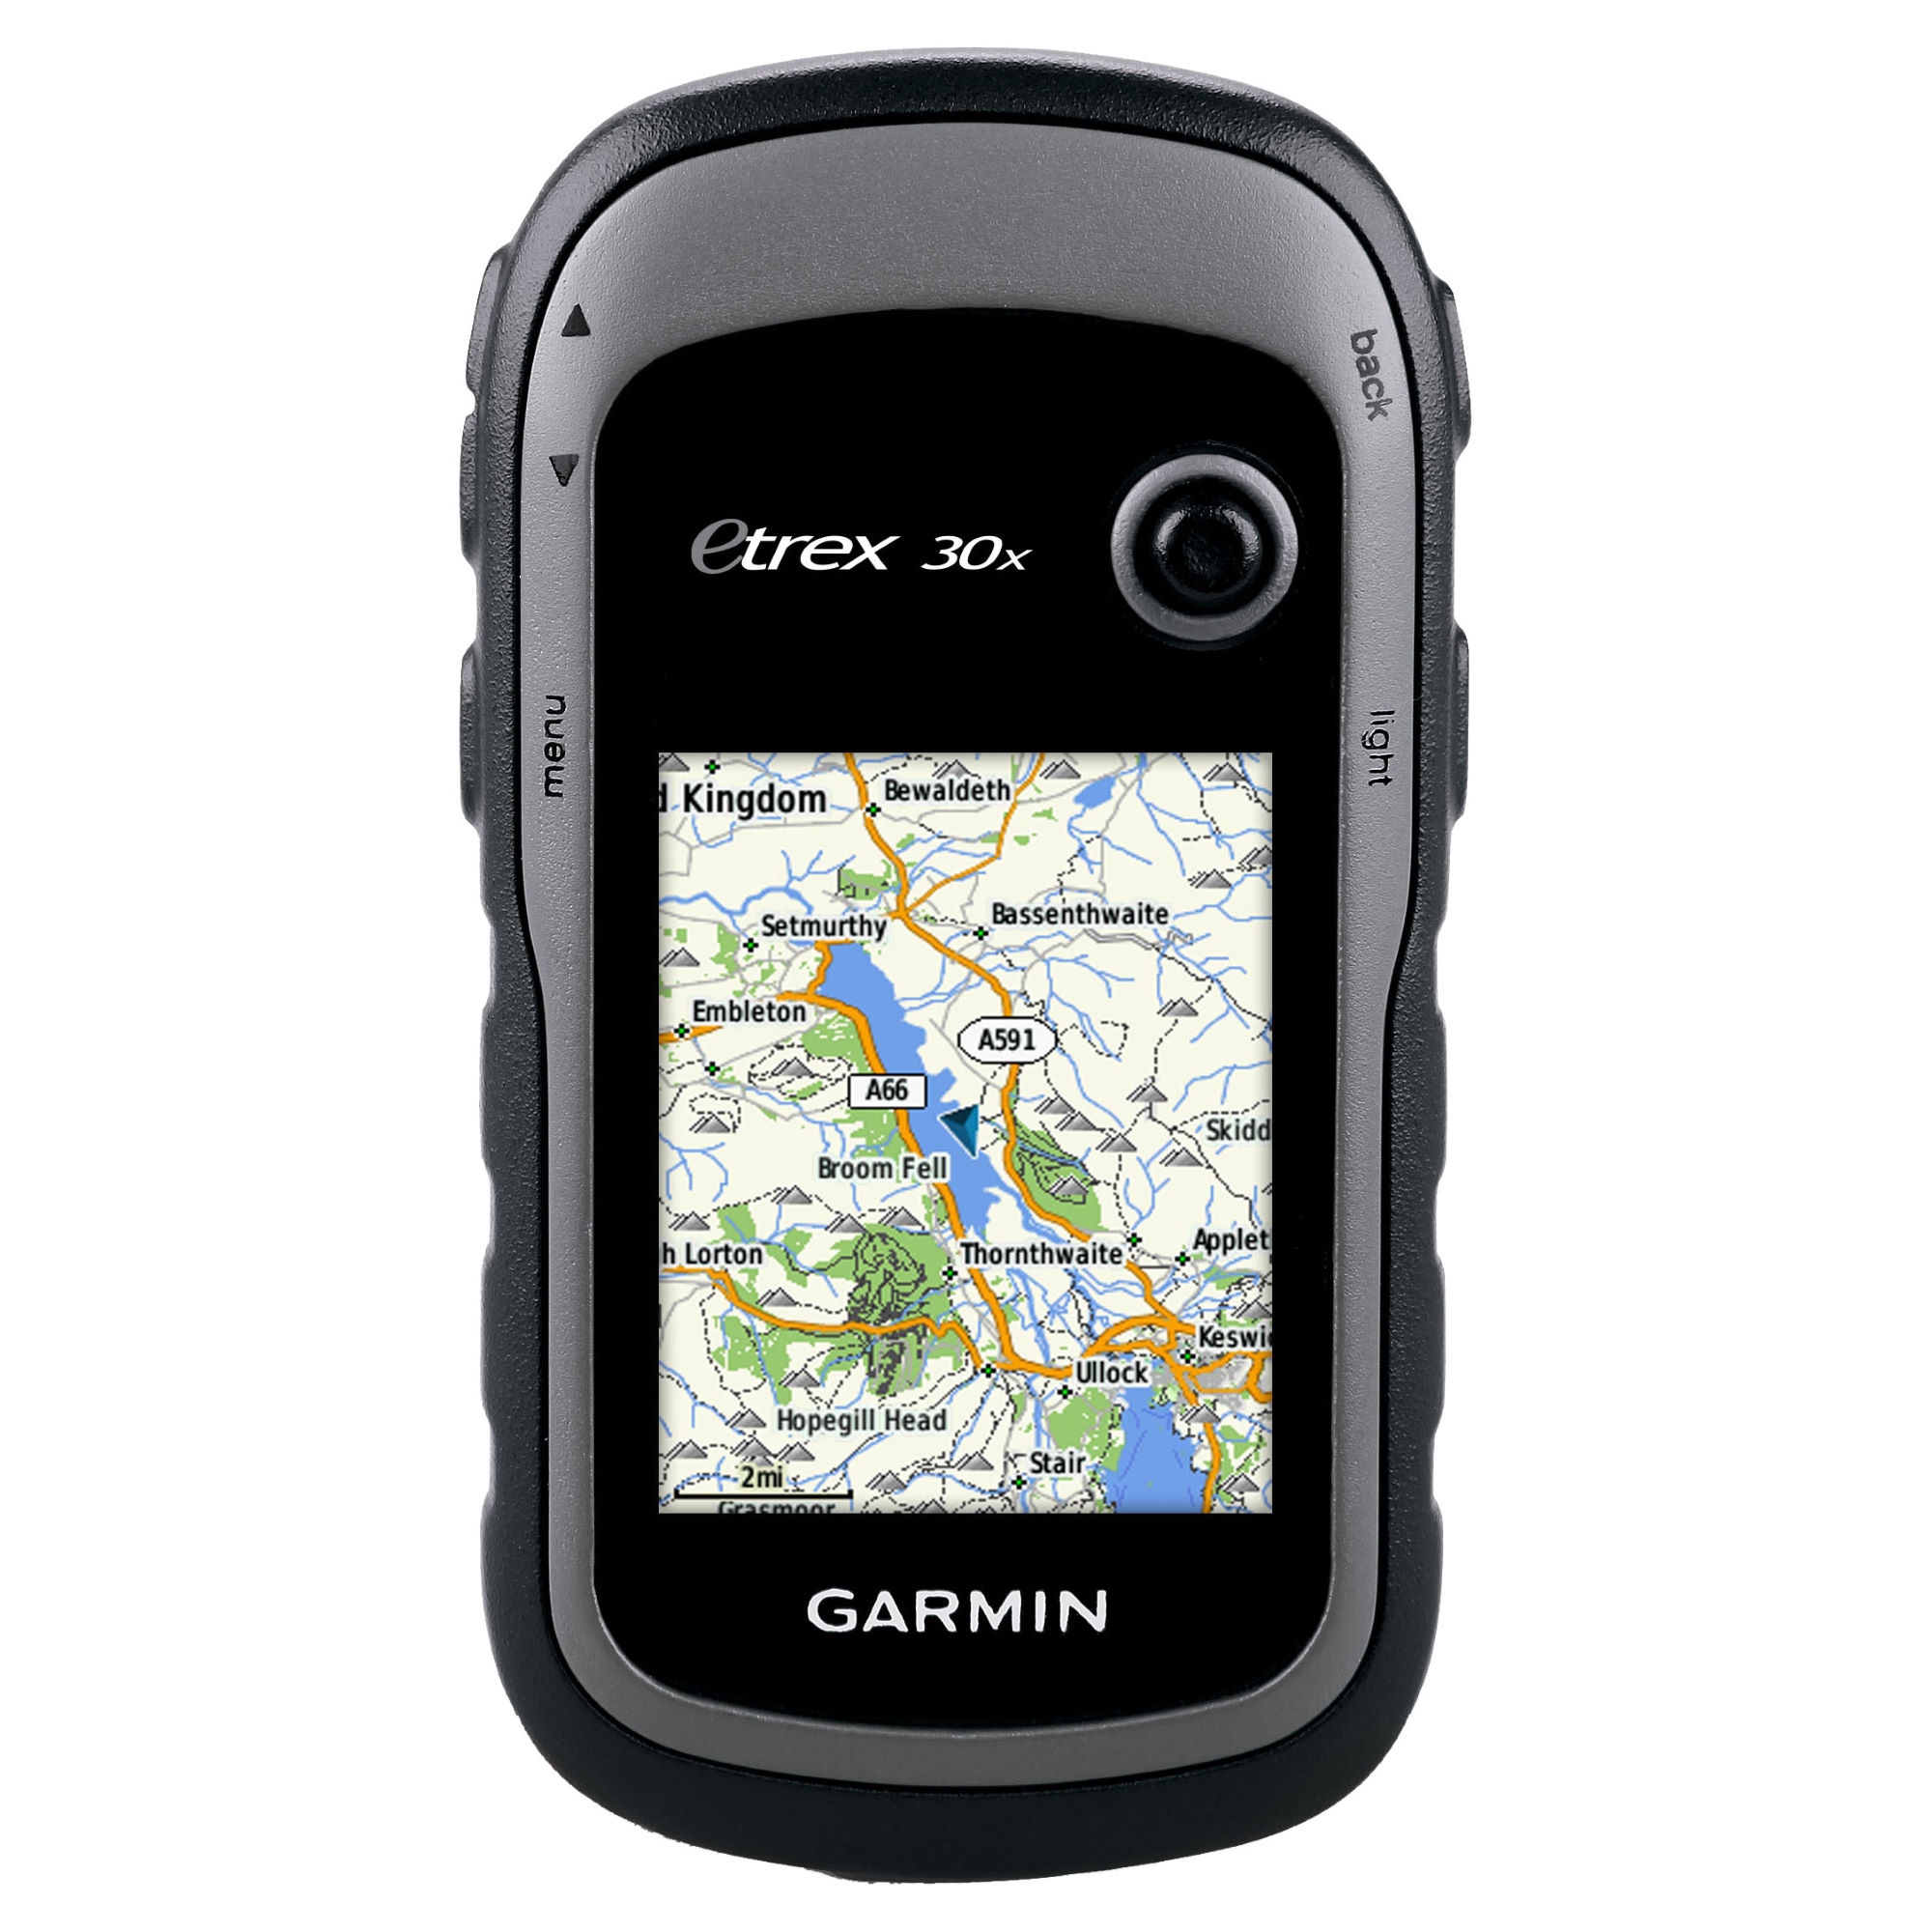 Wiggle Garmin Etrex 30x Gps With Western Europe Maps